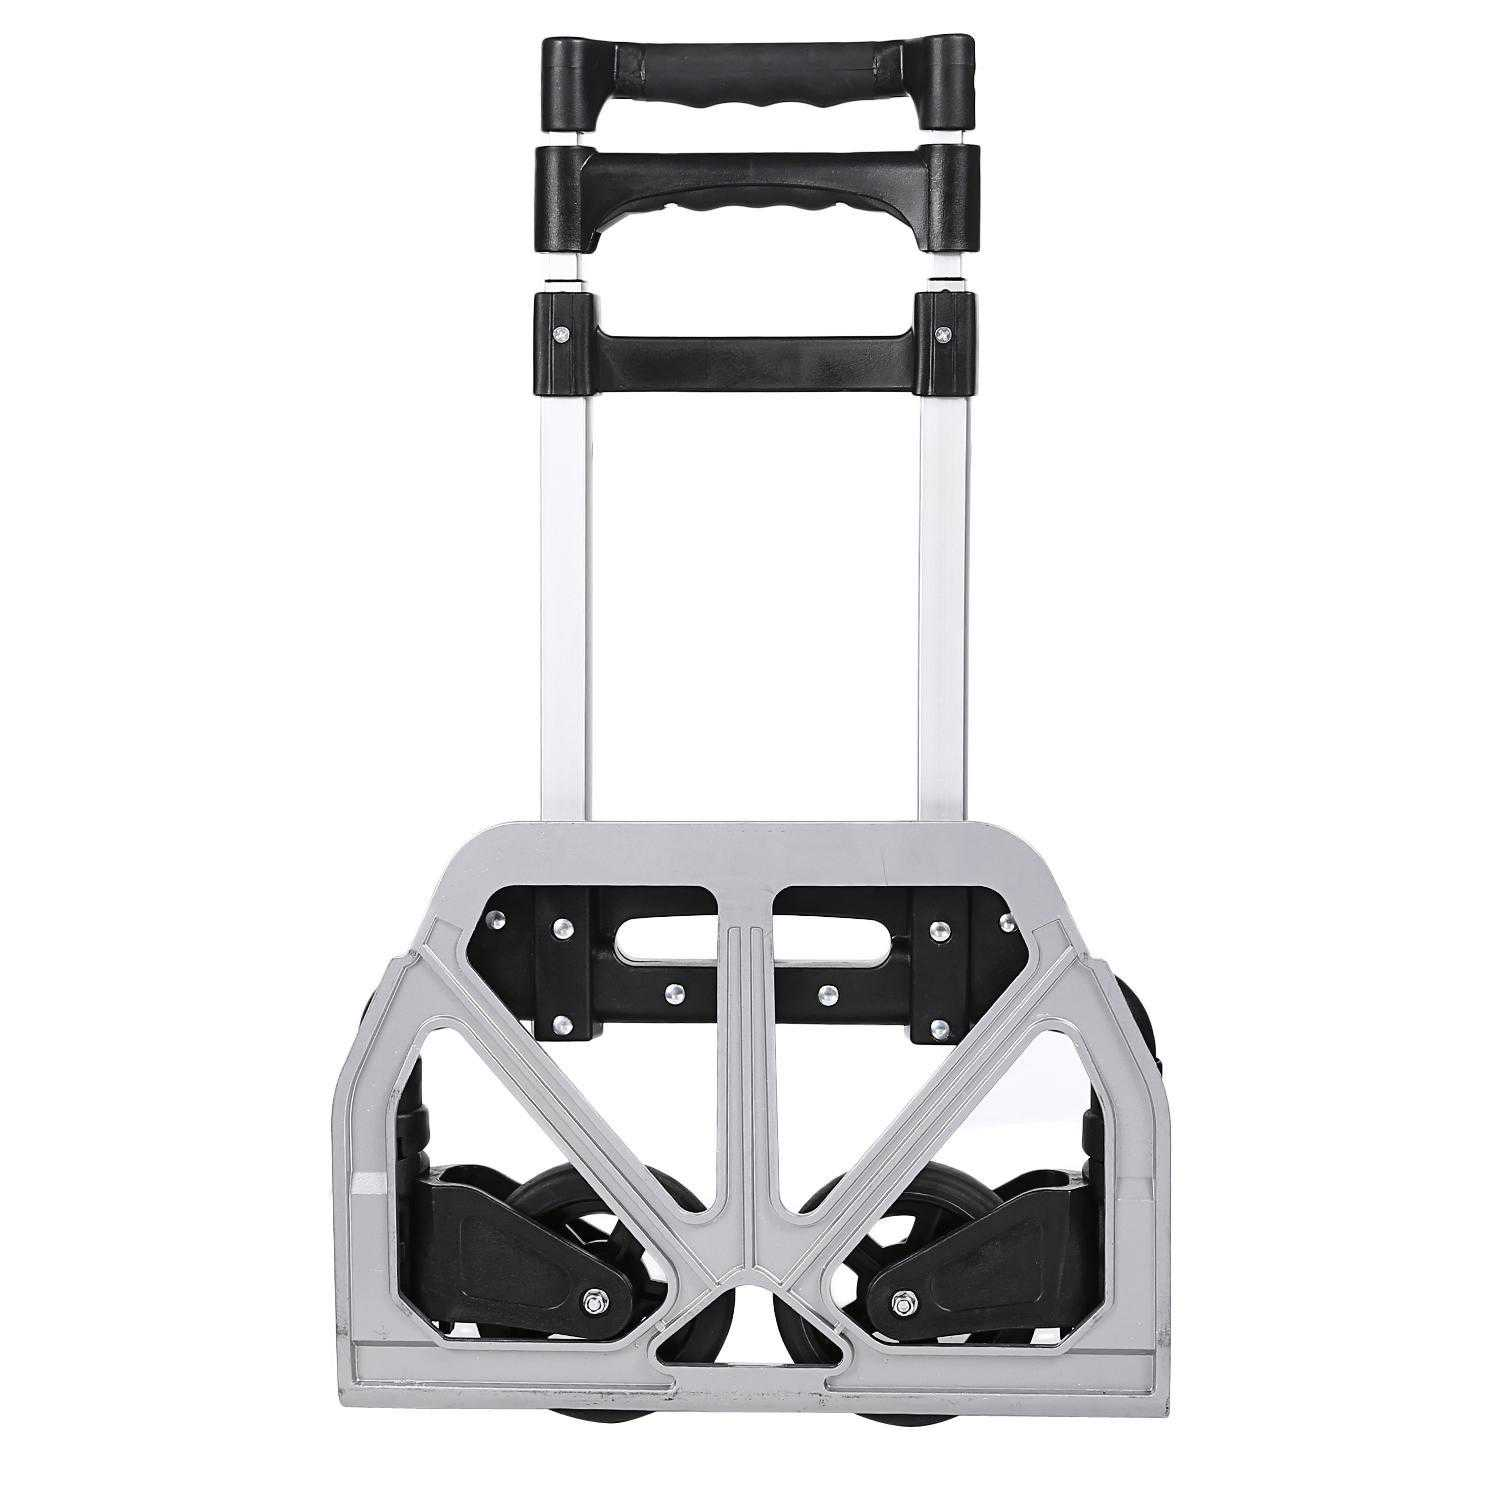 Telescoping Hand Truck Portable Folding 150 lbs Hand Truck Dolly Luggage Carts Aluminum Alloy CCGE